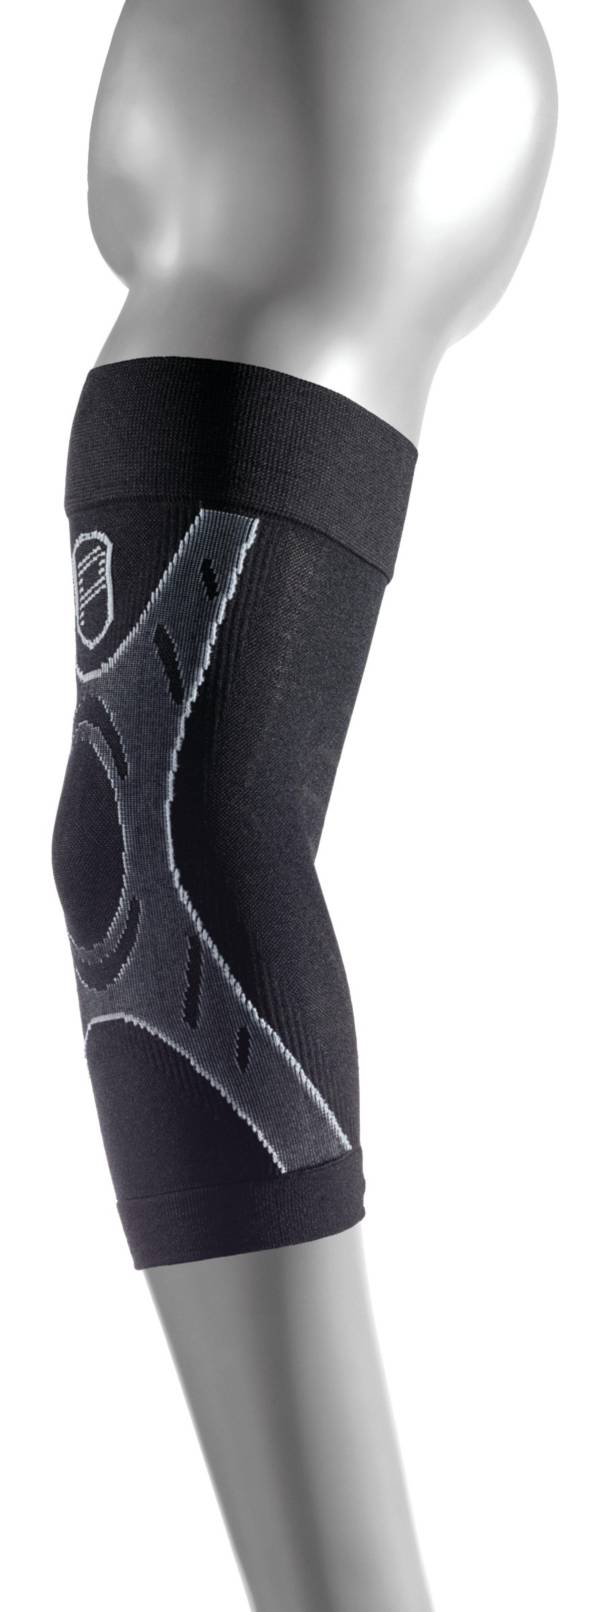 P-TEX PRO Knit Compression Elbow Sleeve product image